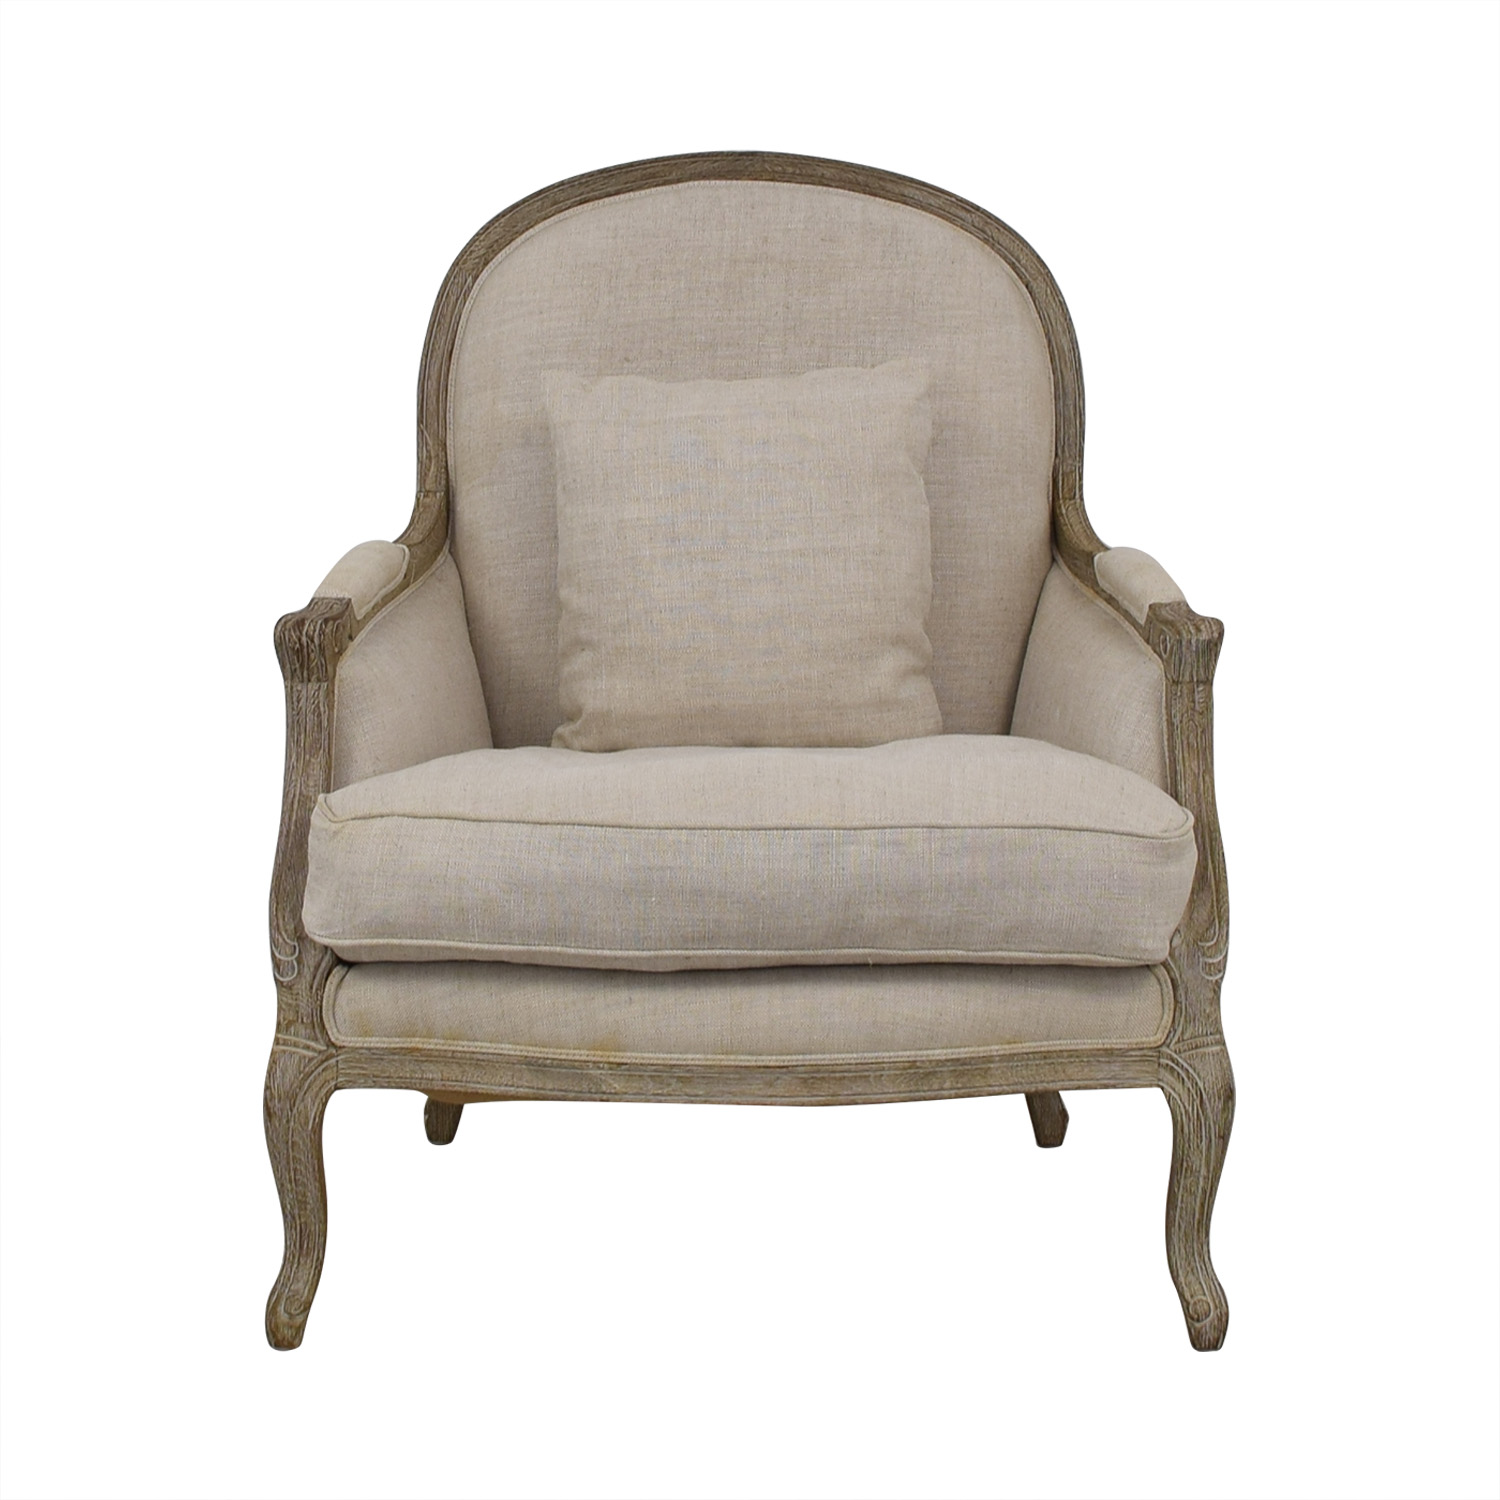 Restoration Hardware Restoration Hardware Lyon Chair discount